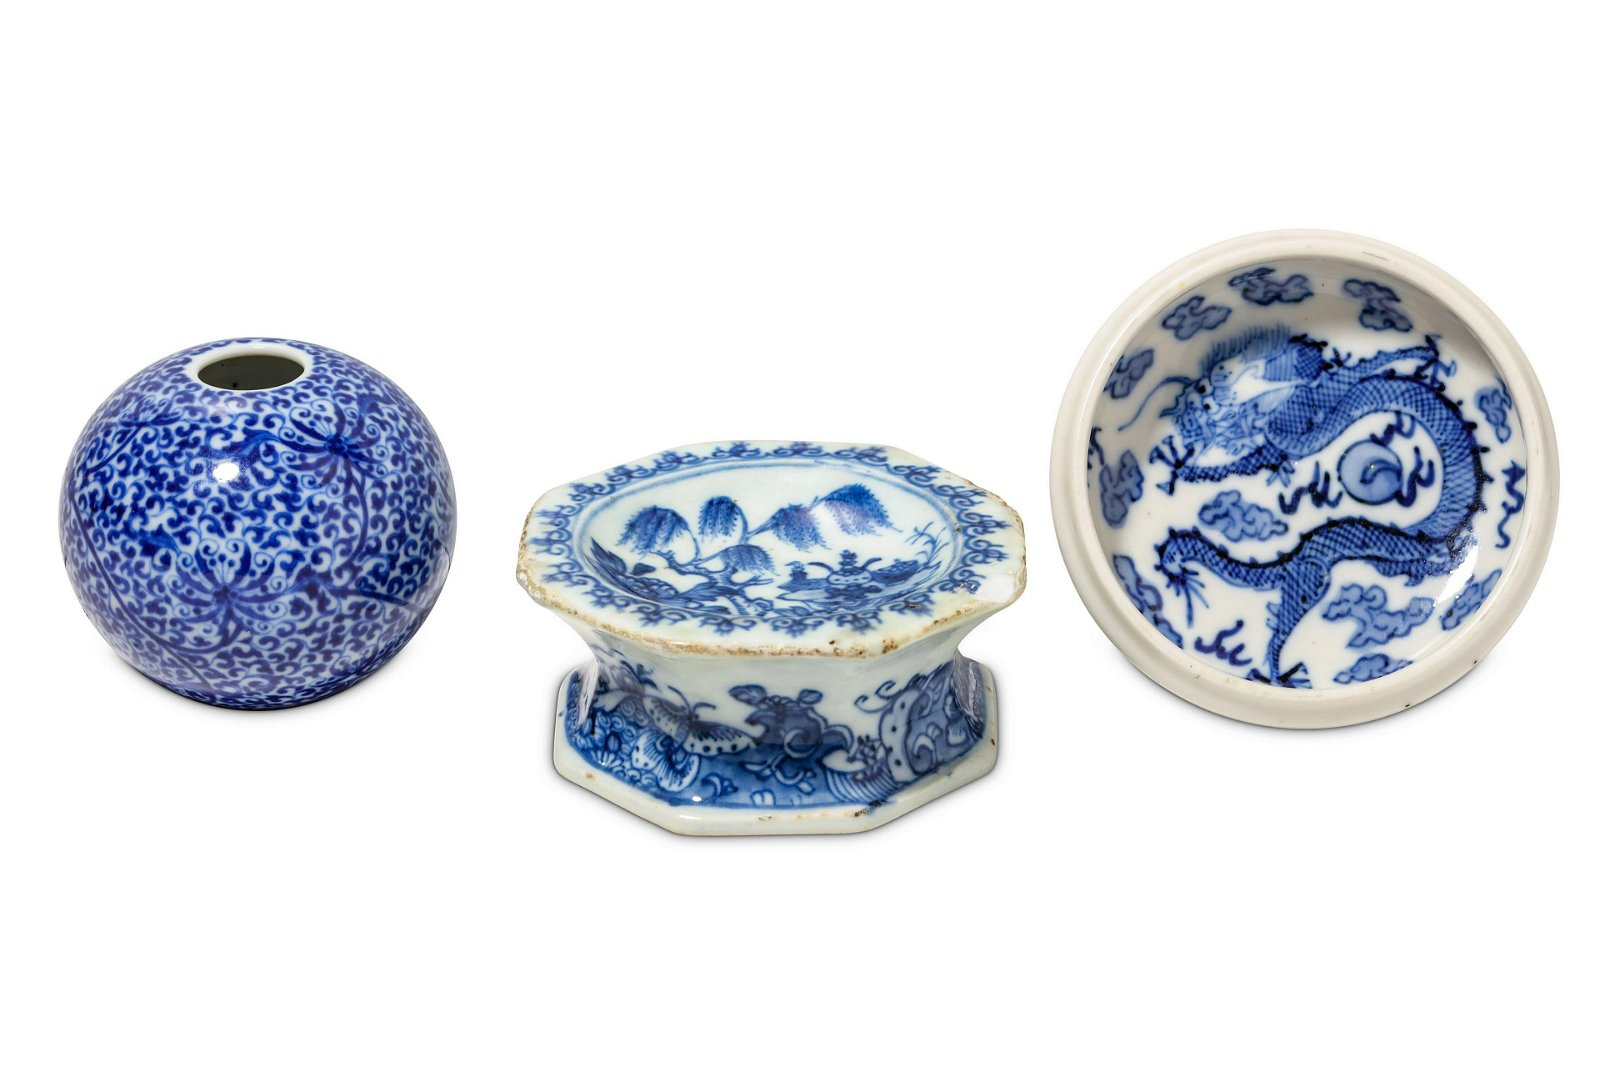 A SMALL COLLECTION OF CHINESE BLUE AND WHITE PORCE